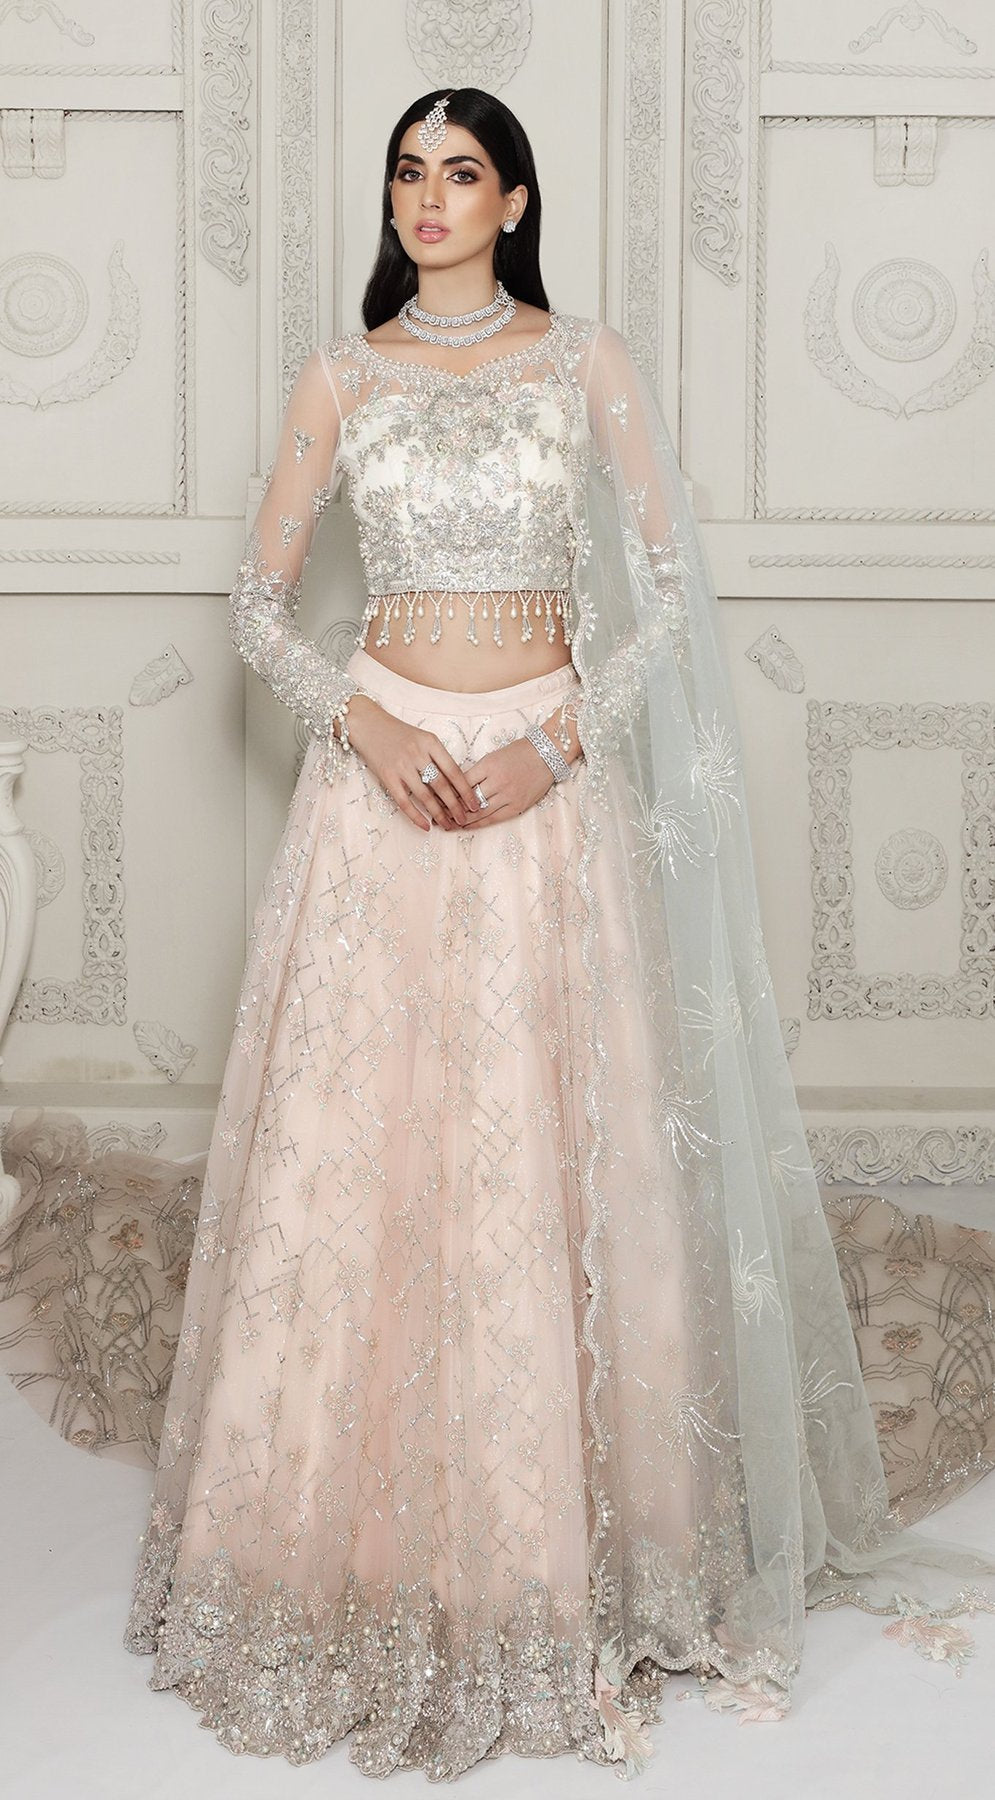 Anaya Bridal Collection - KIARA